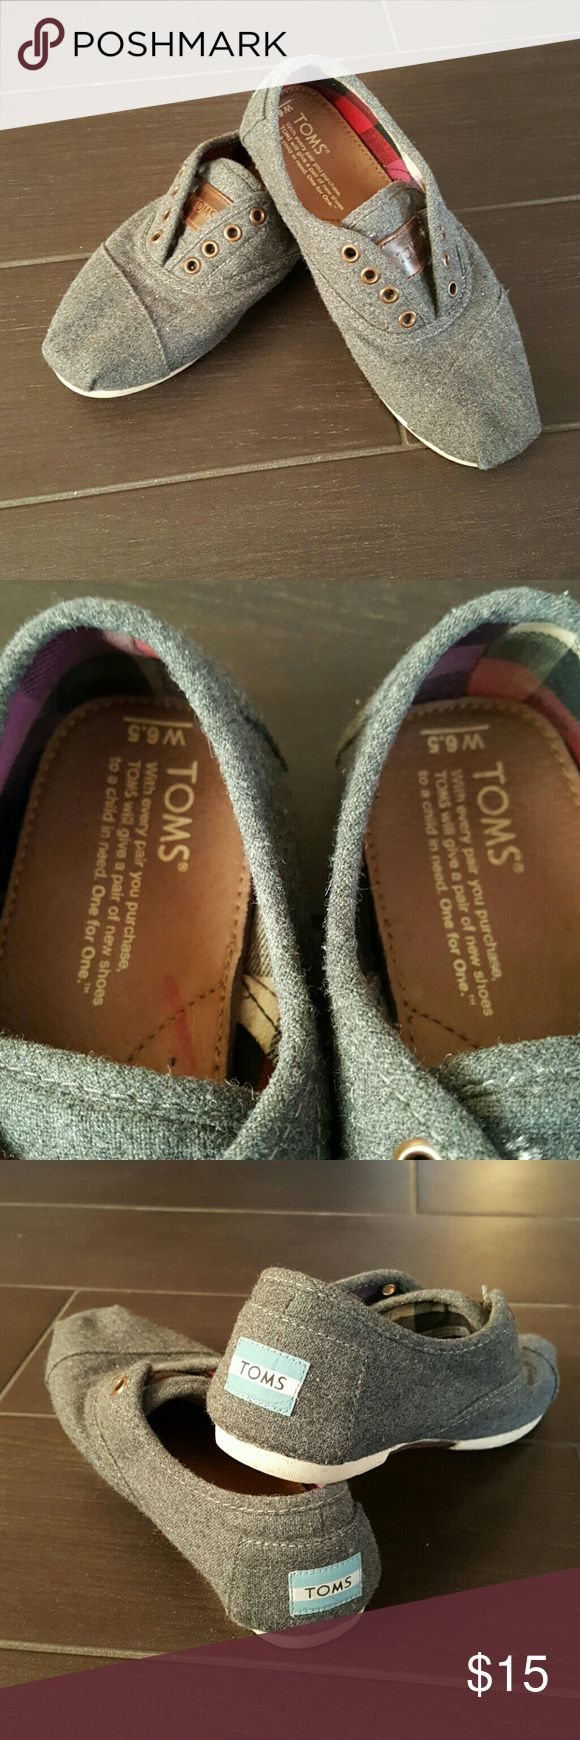 TOMS Lace Up Shoes 6.5 Gray TOMS shoes in good condition.  Size 6.5 TOMS Shoes Flats & Loafers